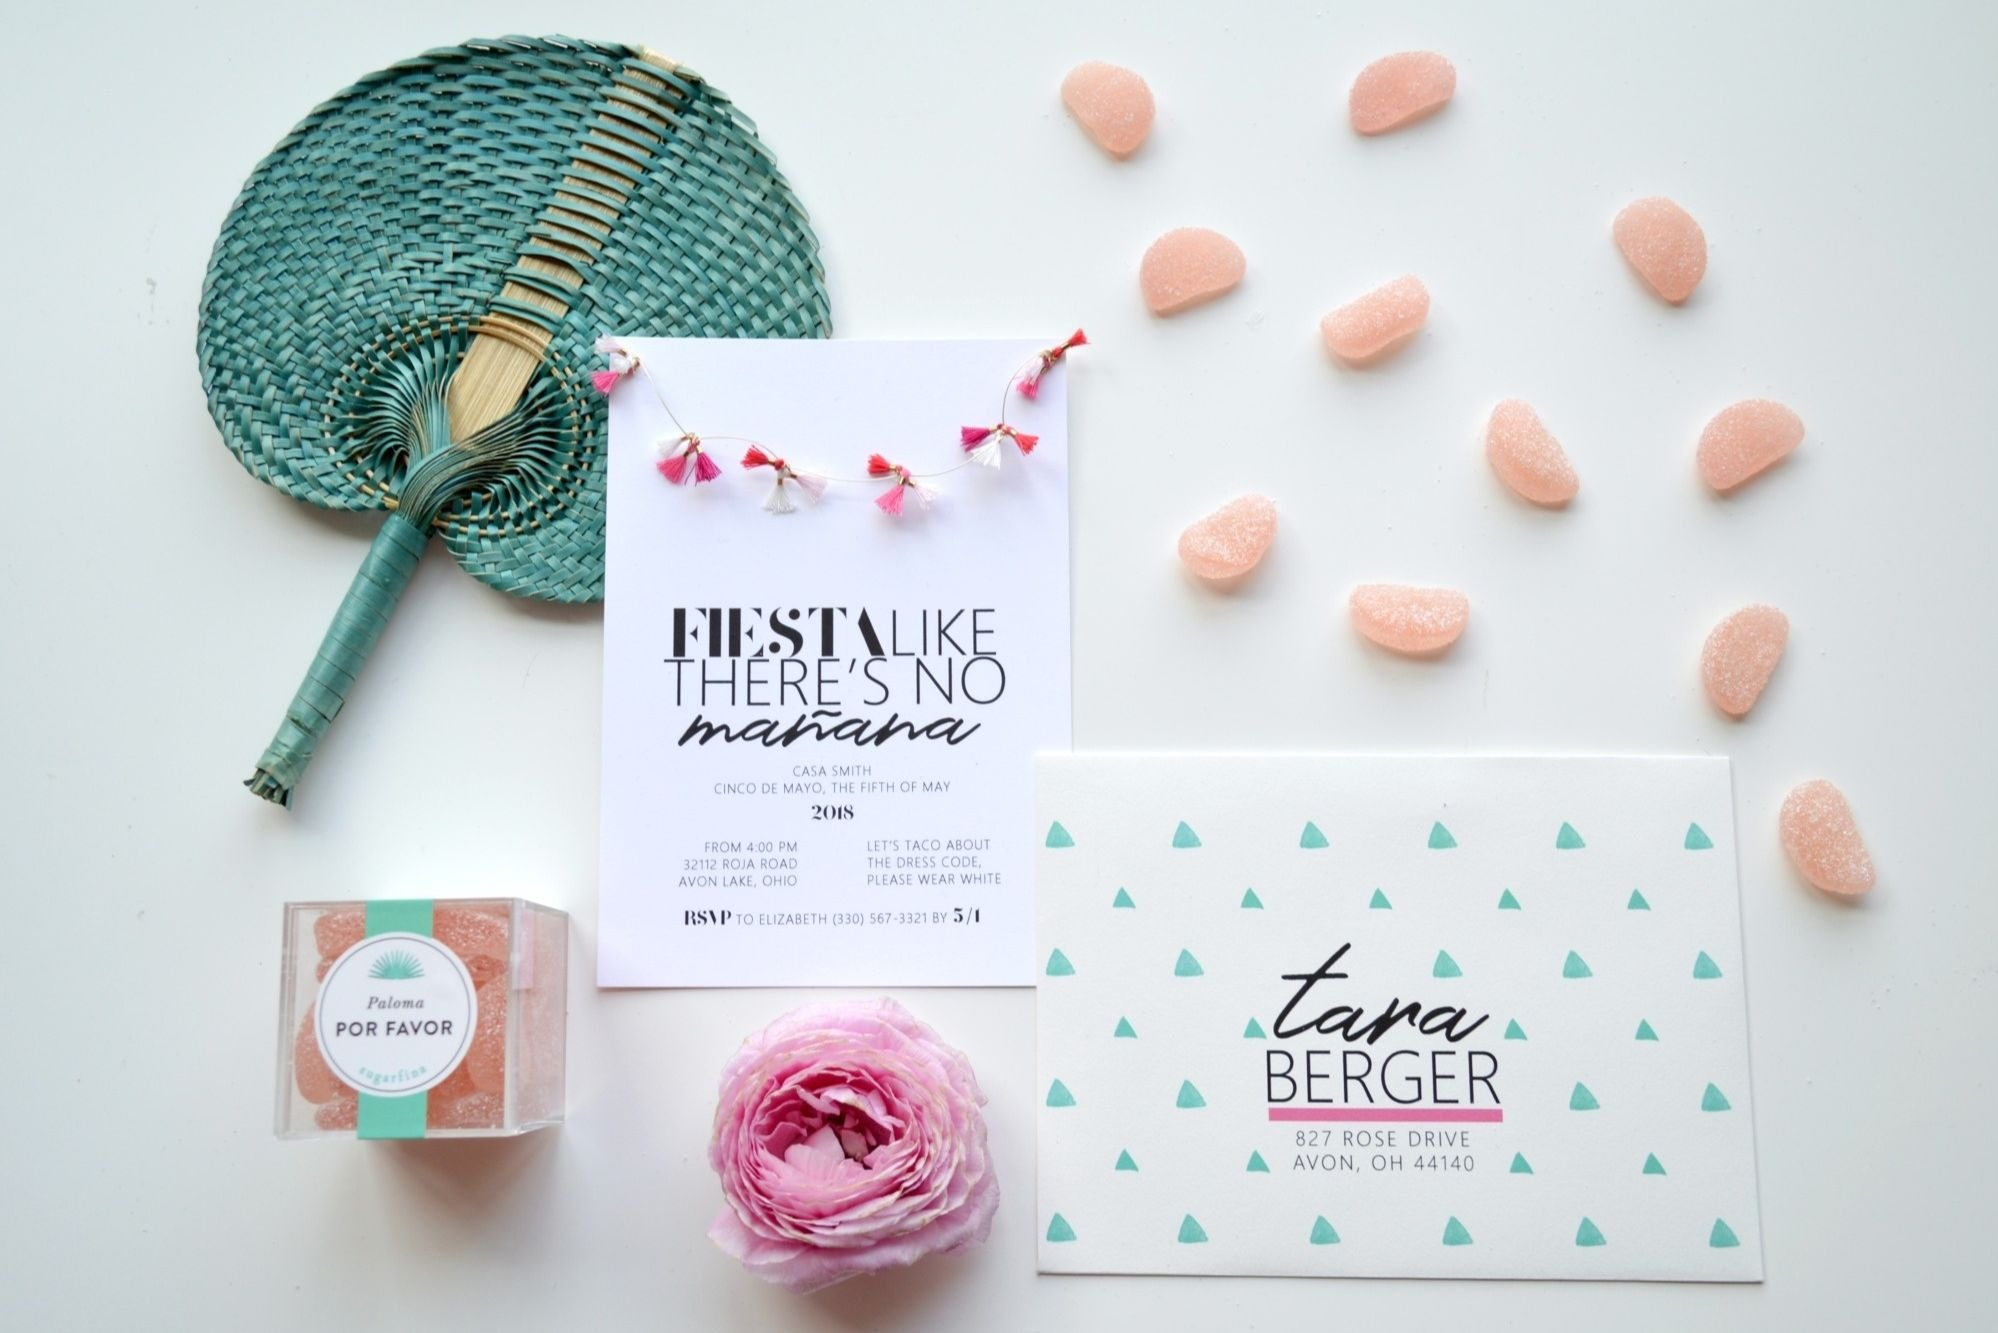 Invitation from Chic Floral Fiesta Styled by One Stylish Party | Black Twine